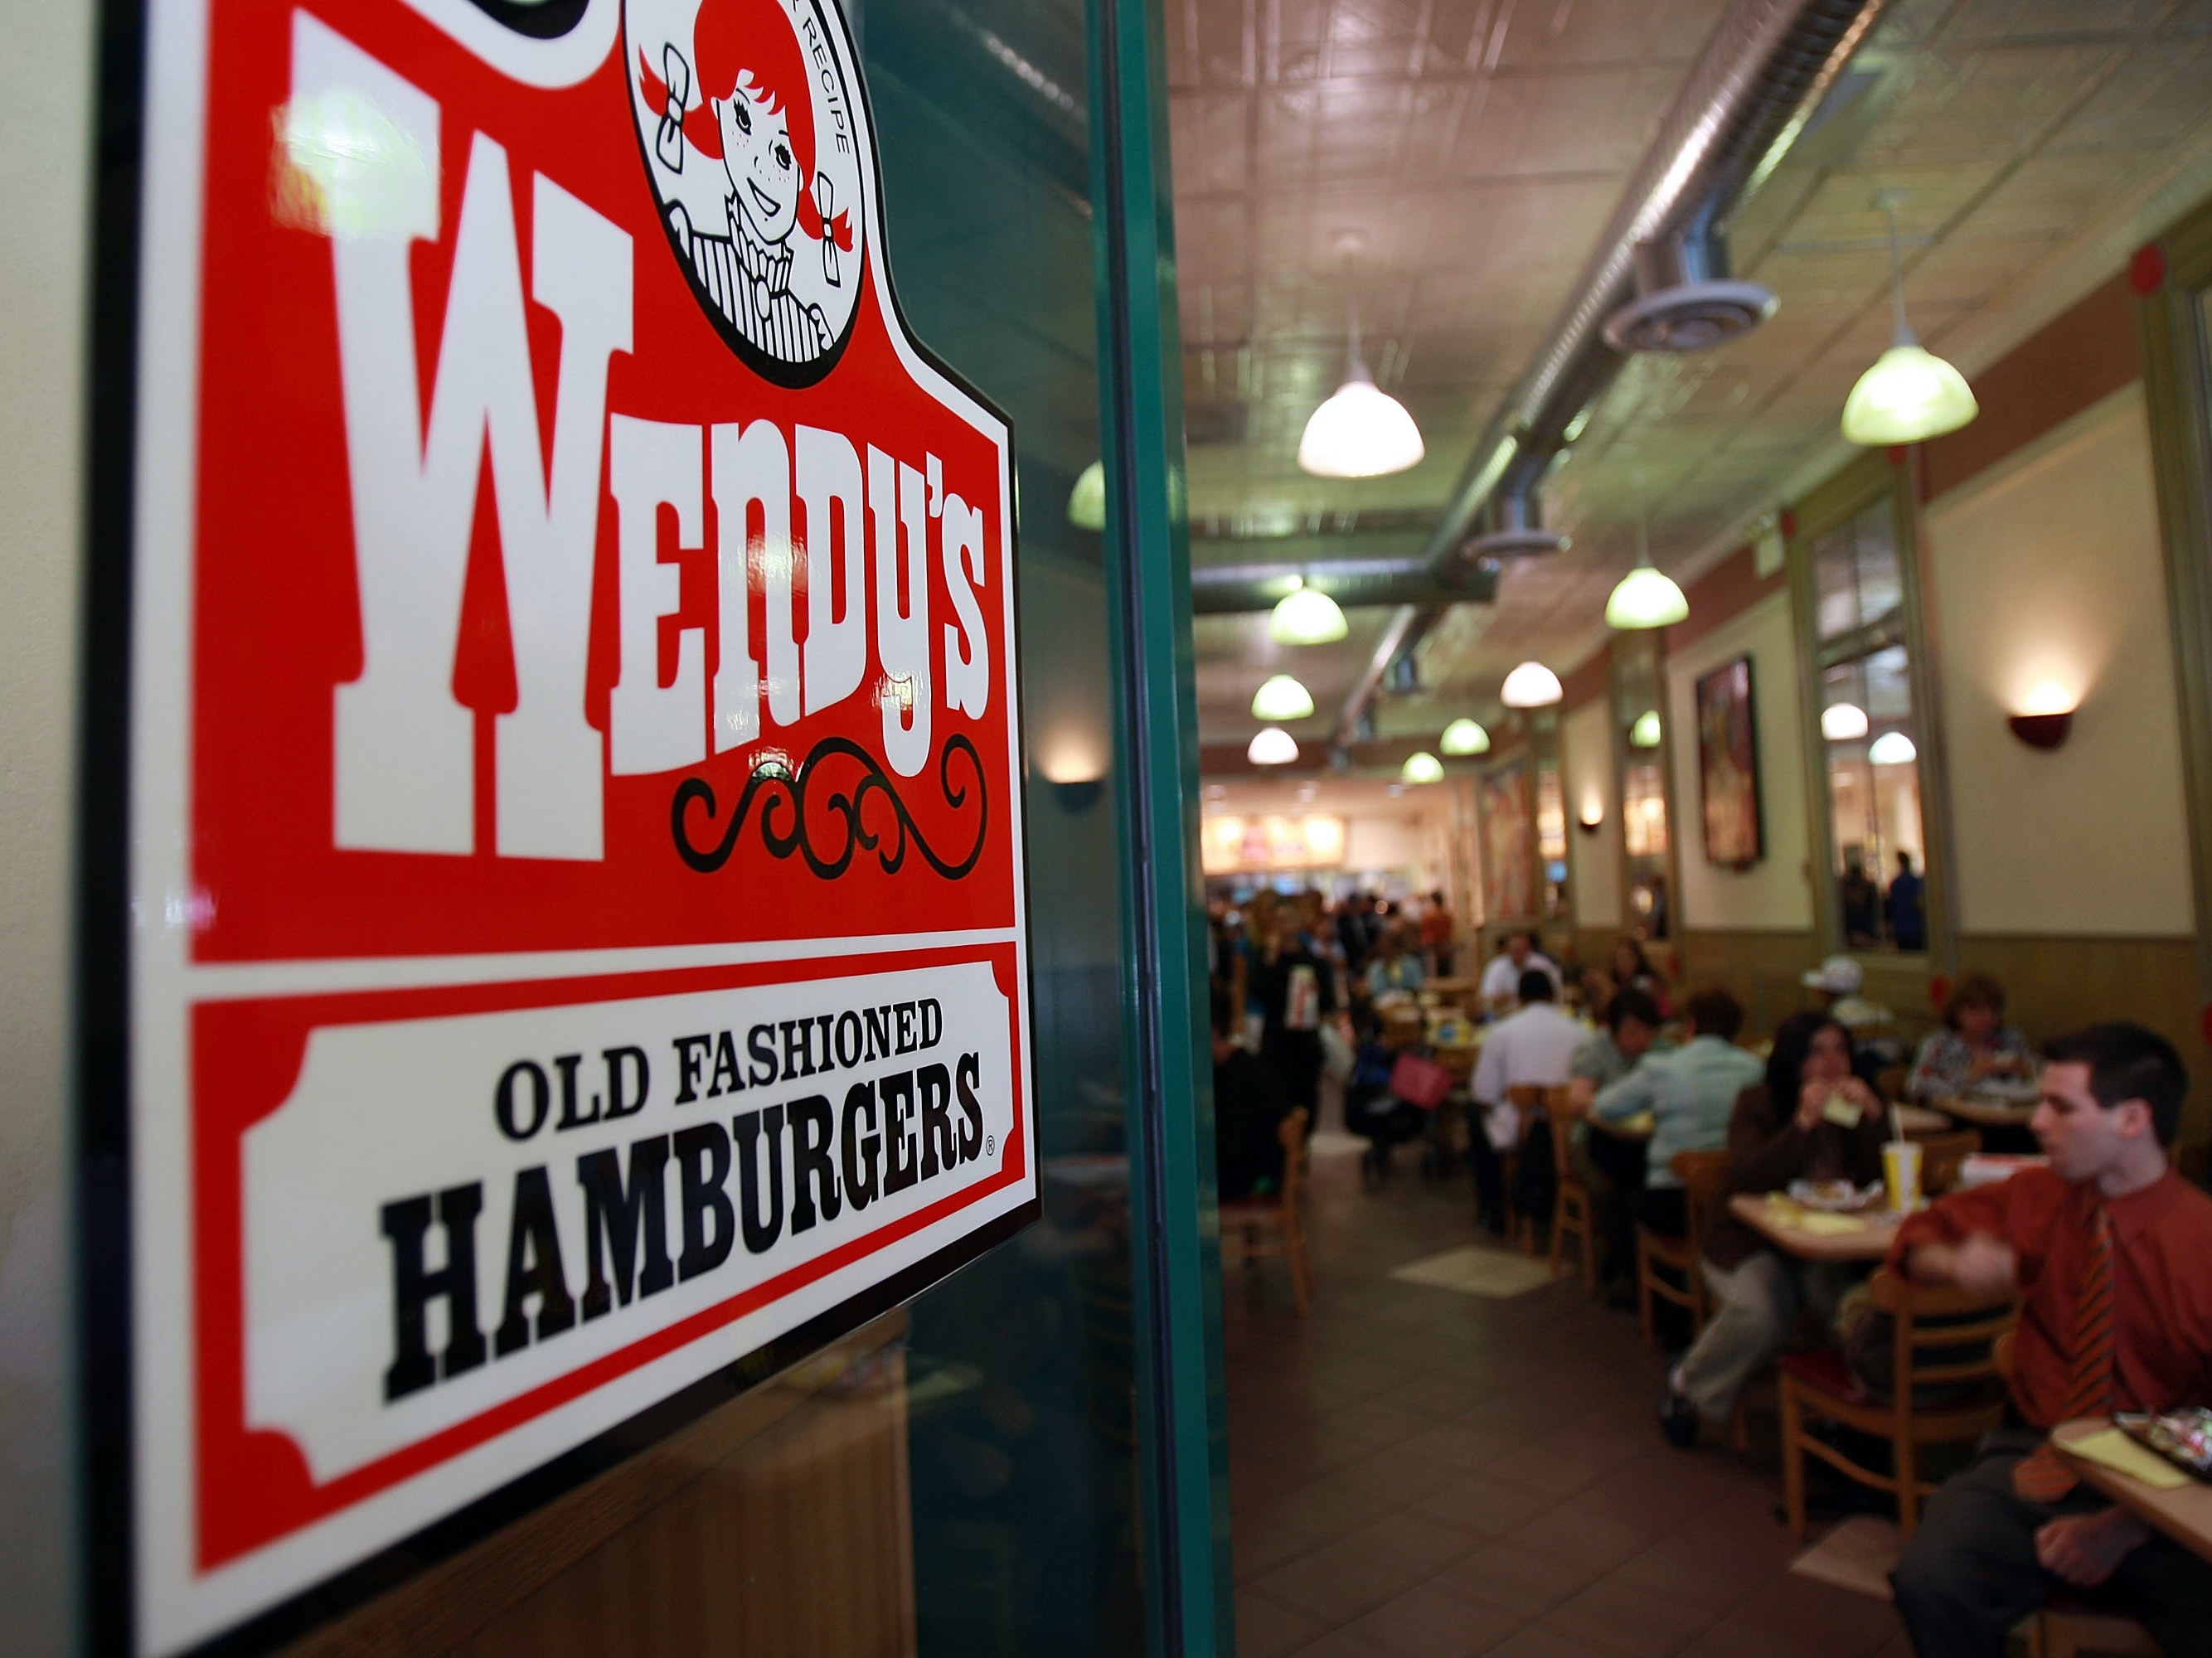 People eat in a Wendy's April 24, 2008 in New York City. Wendy's International Inc., which is the nation's No. 3 hamburger chain, was bought by Triarc Companies for about 2.3 billion dollars in an all-stock deal.